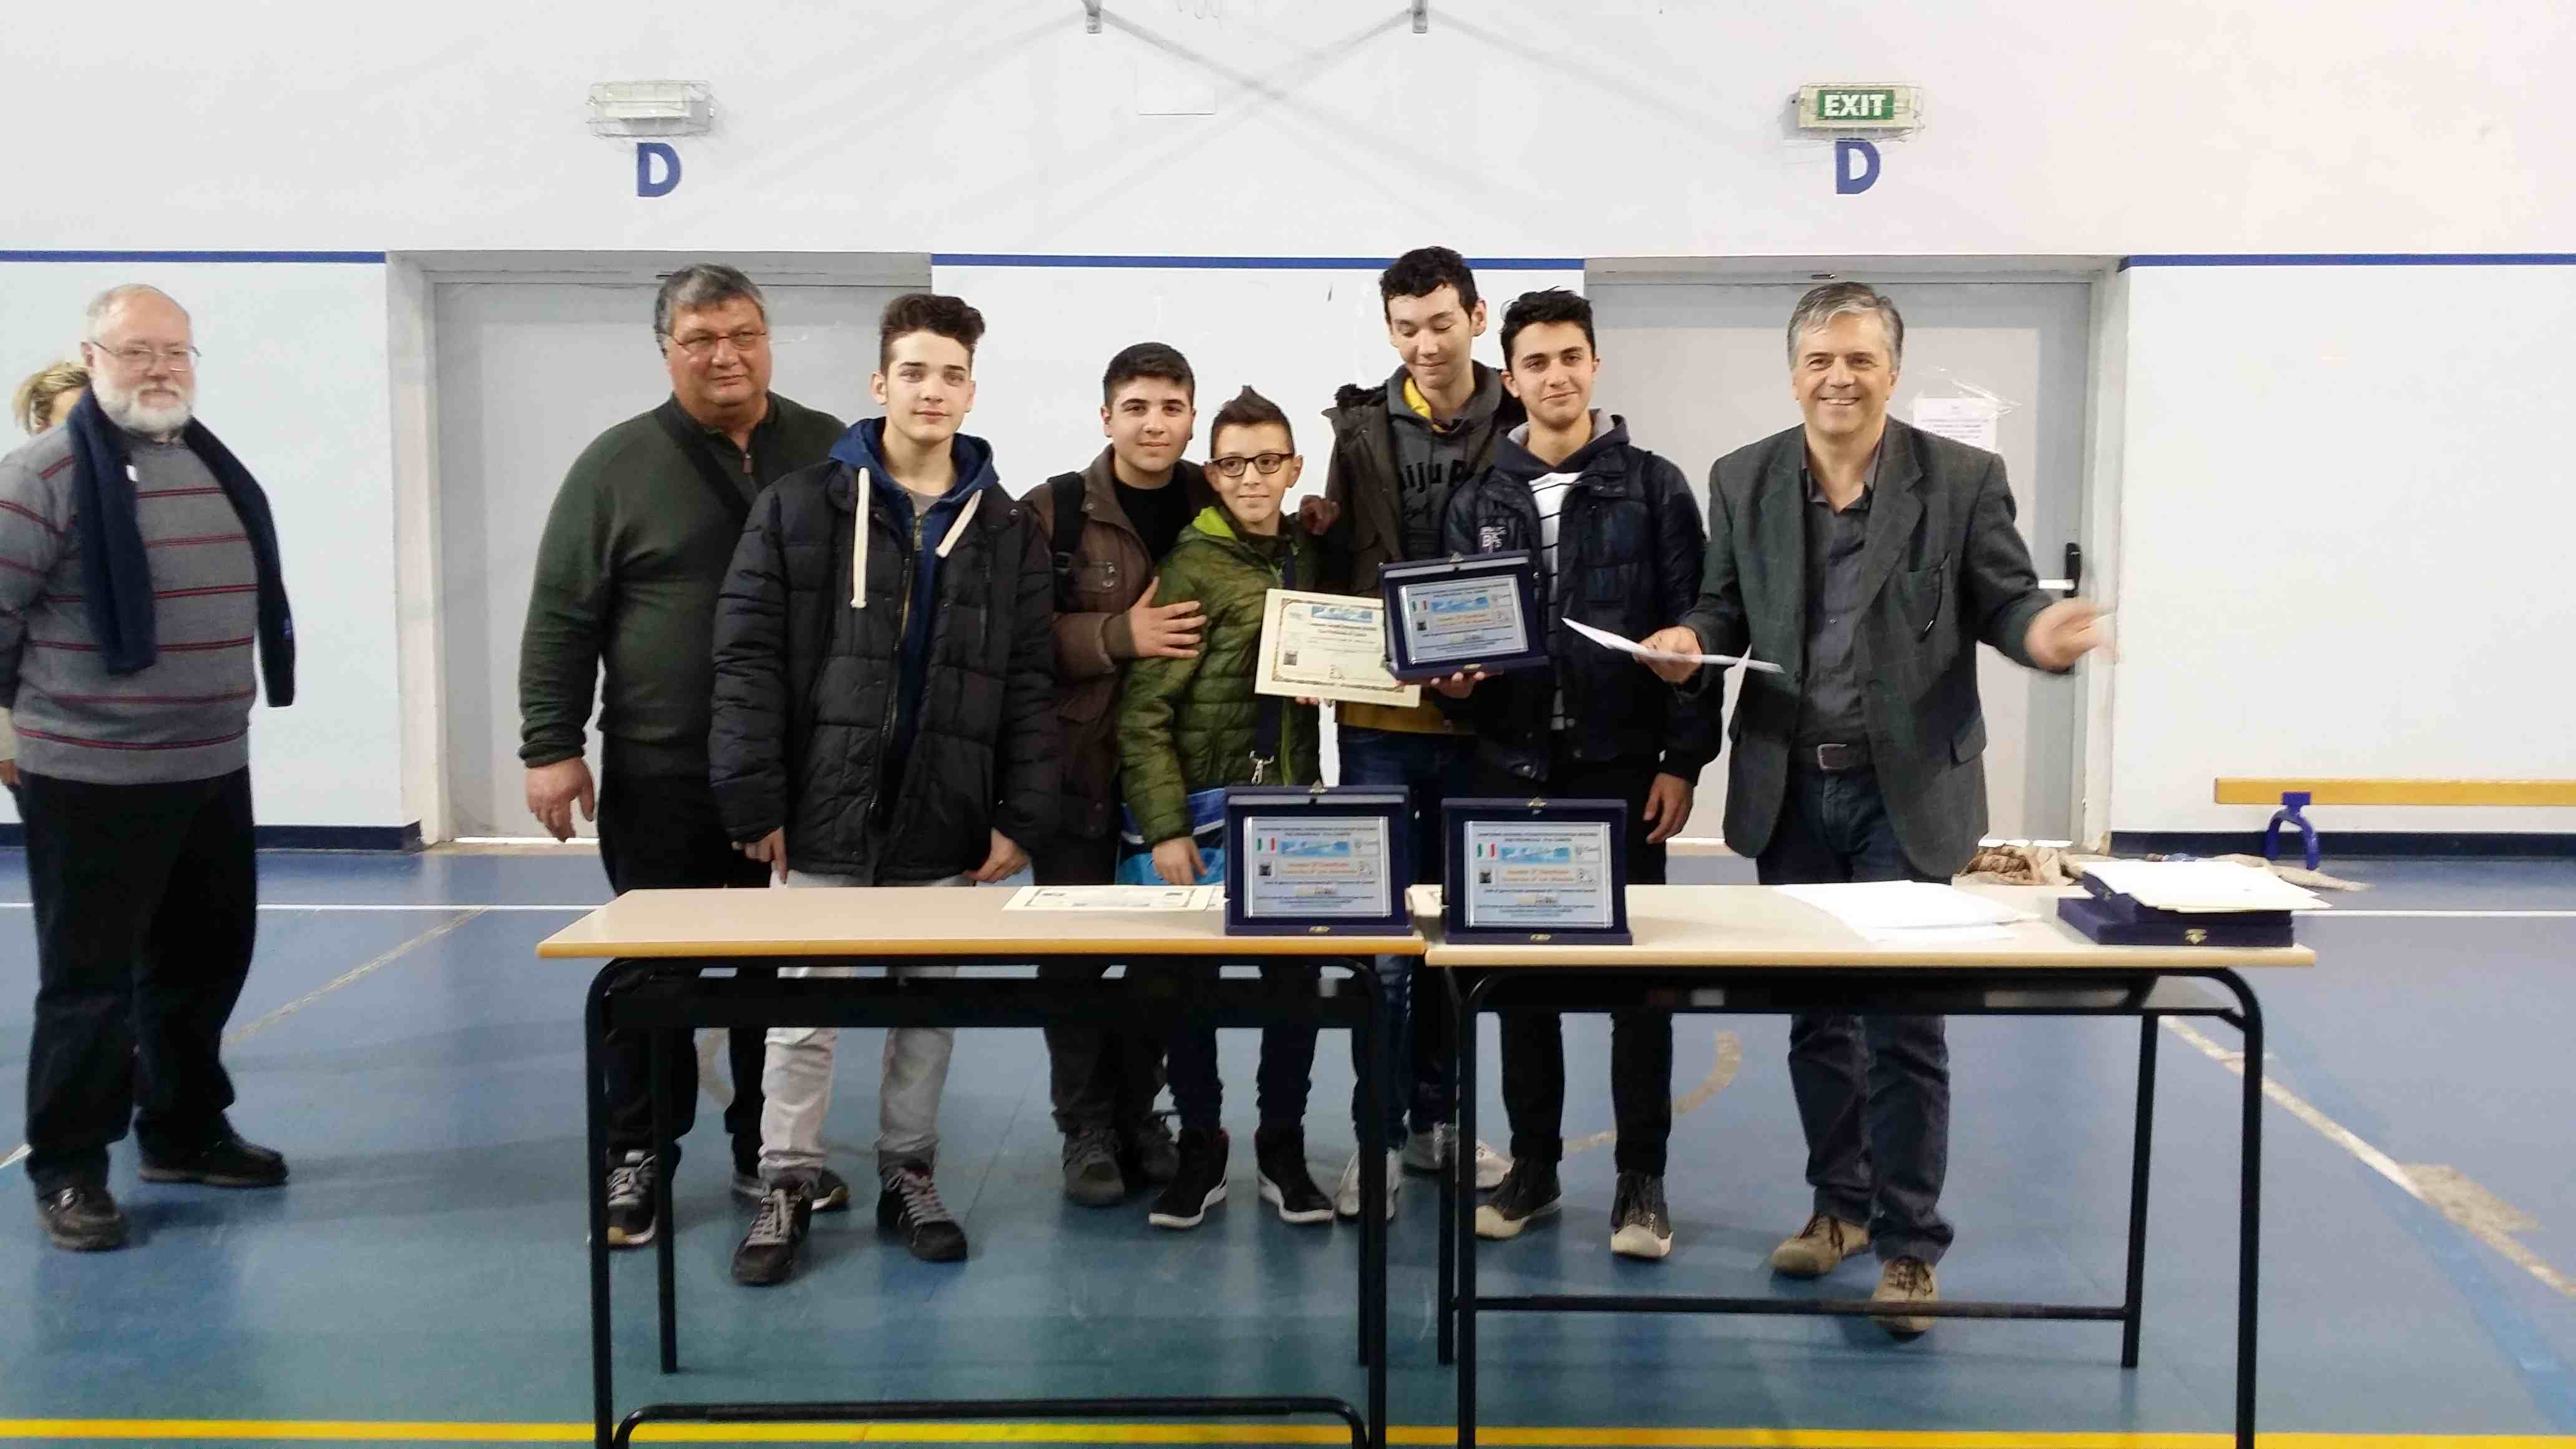 Liceo Scientifico N. Cortese Categoria Sec. II° Allievi Maschile